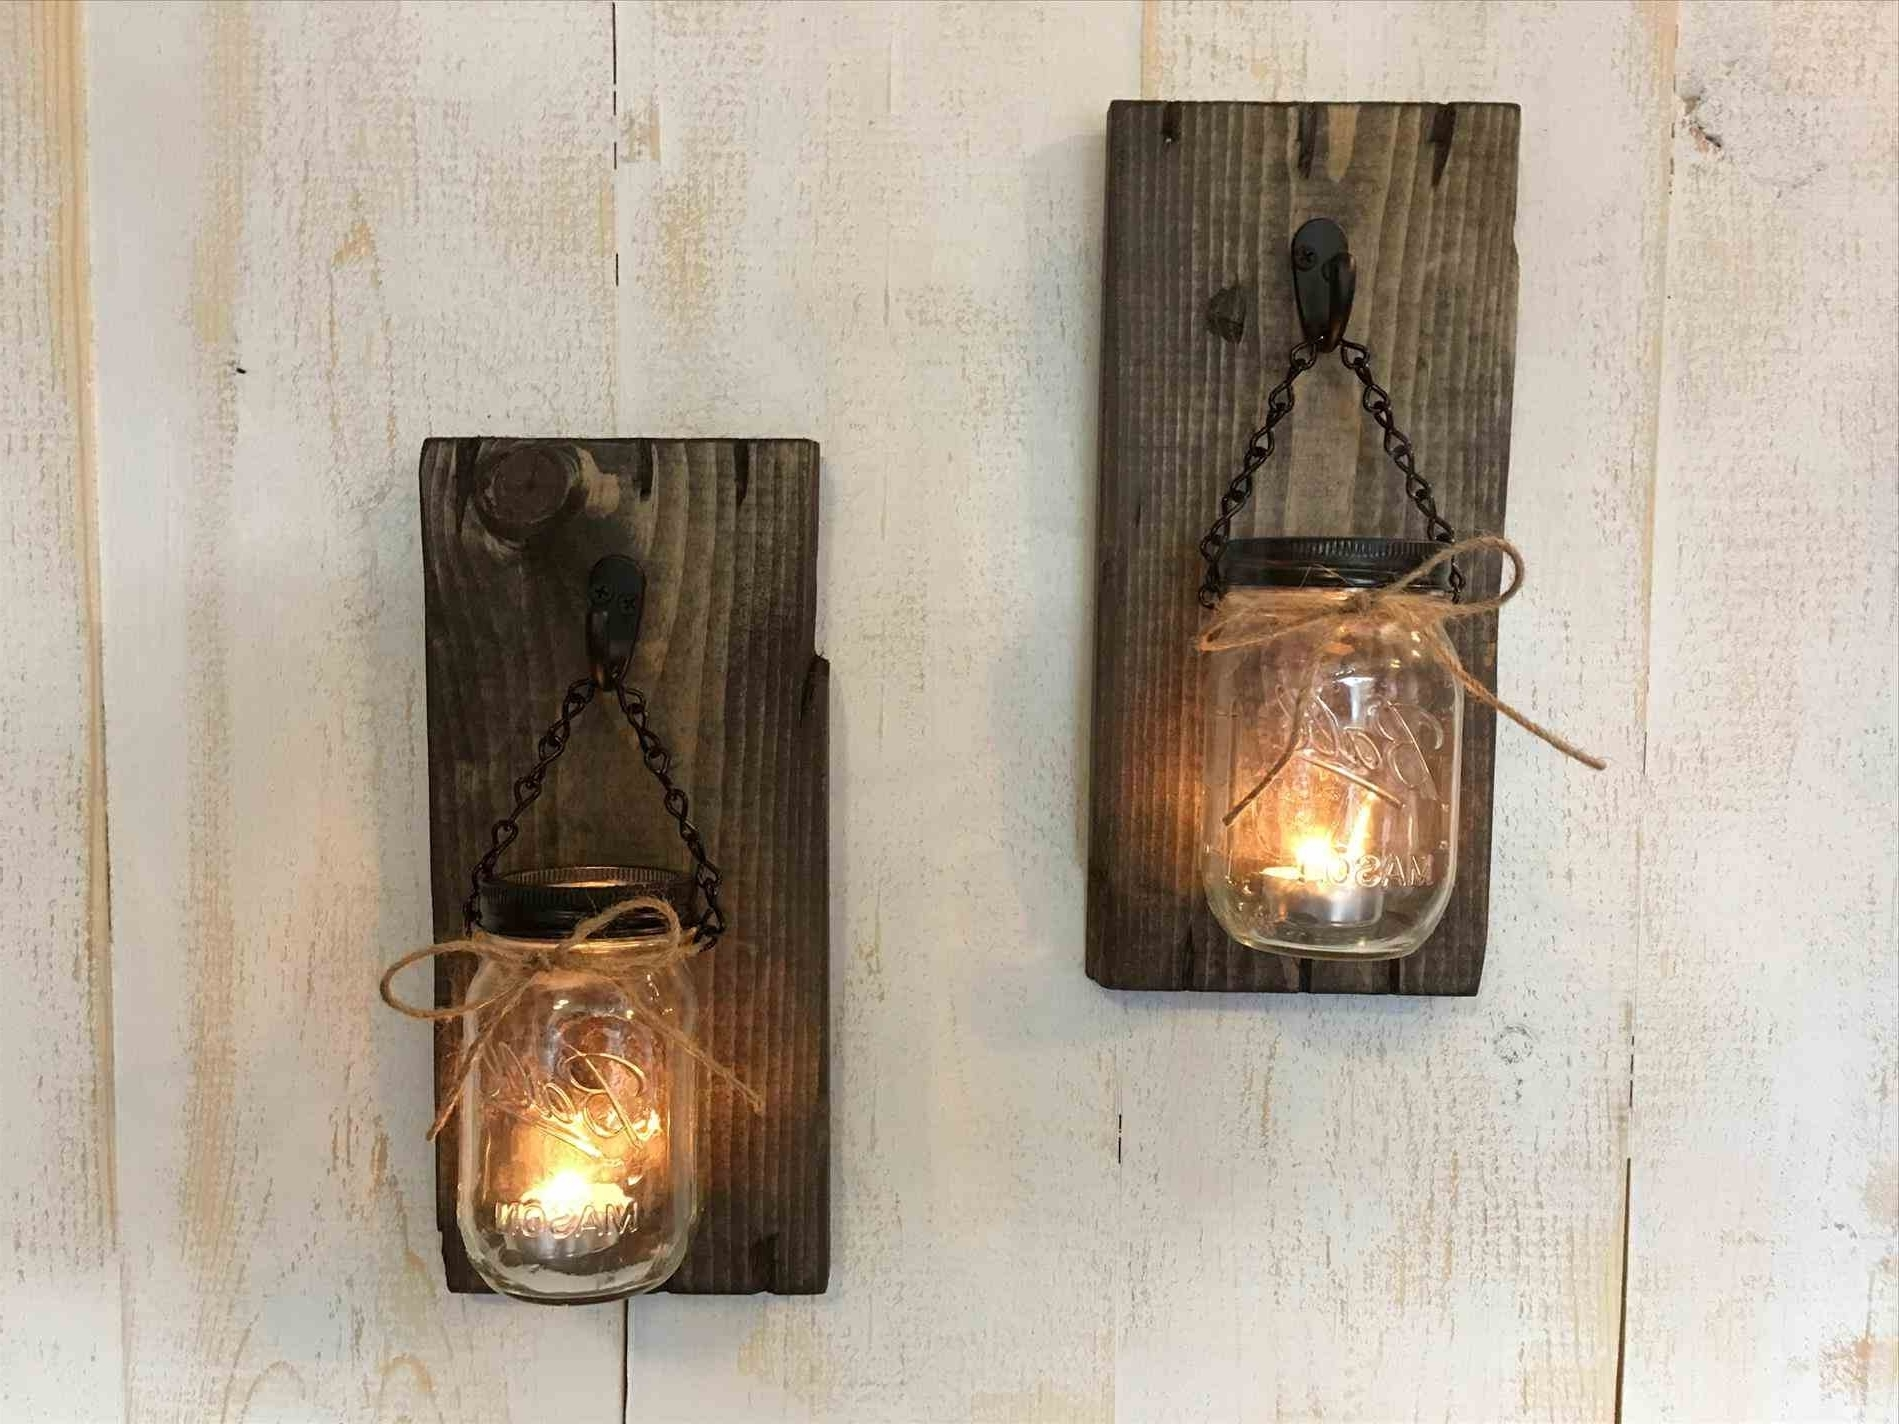 Wall Mounted Candle Chandeliers In Most Current Rustic Candle Sconces Inspect Home Within Rustic Candle Wall Sconces (View 13 of 20)